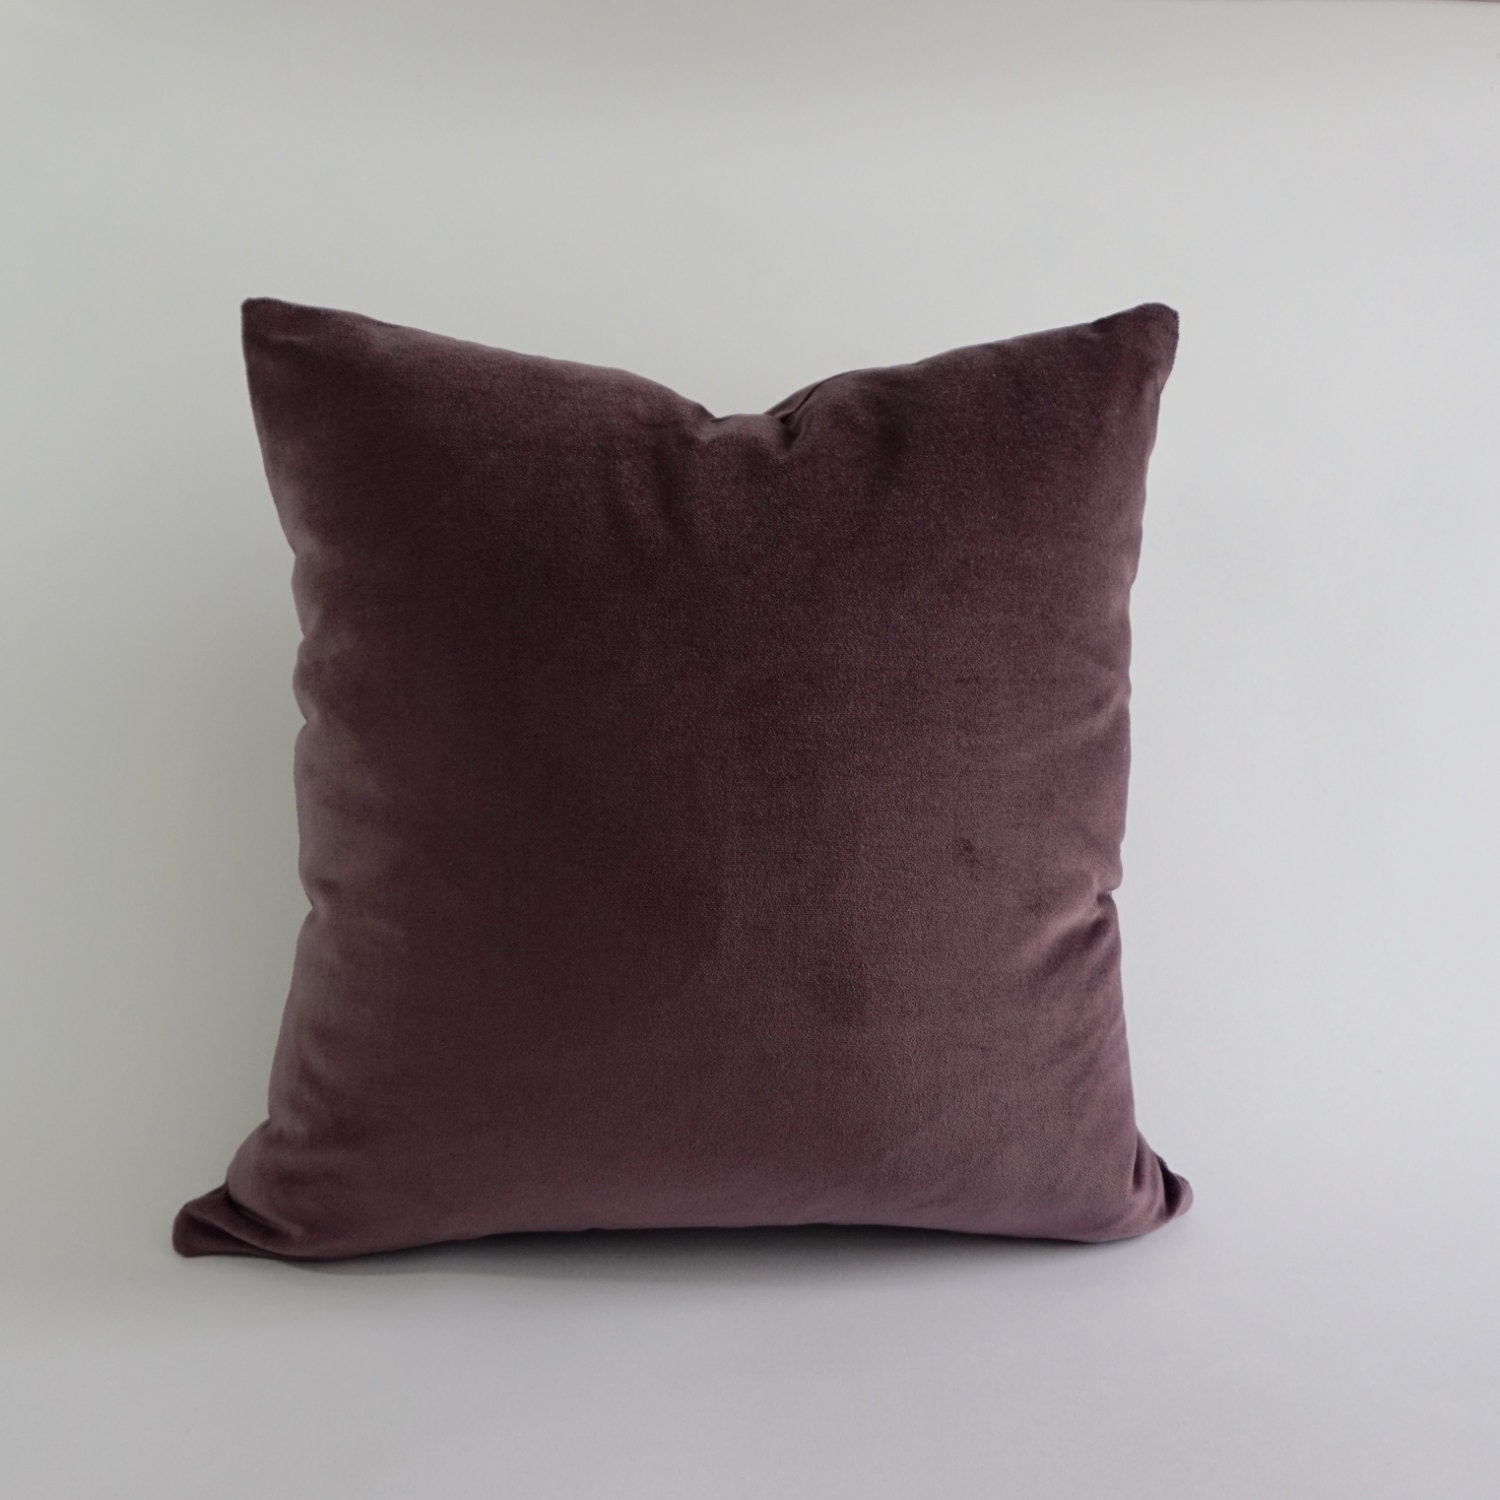 English Lavender Cotton Velvet Pillow Cover- Decorative Accent Throw Pillows -Invisible Zipper ...